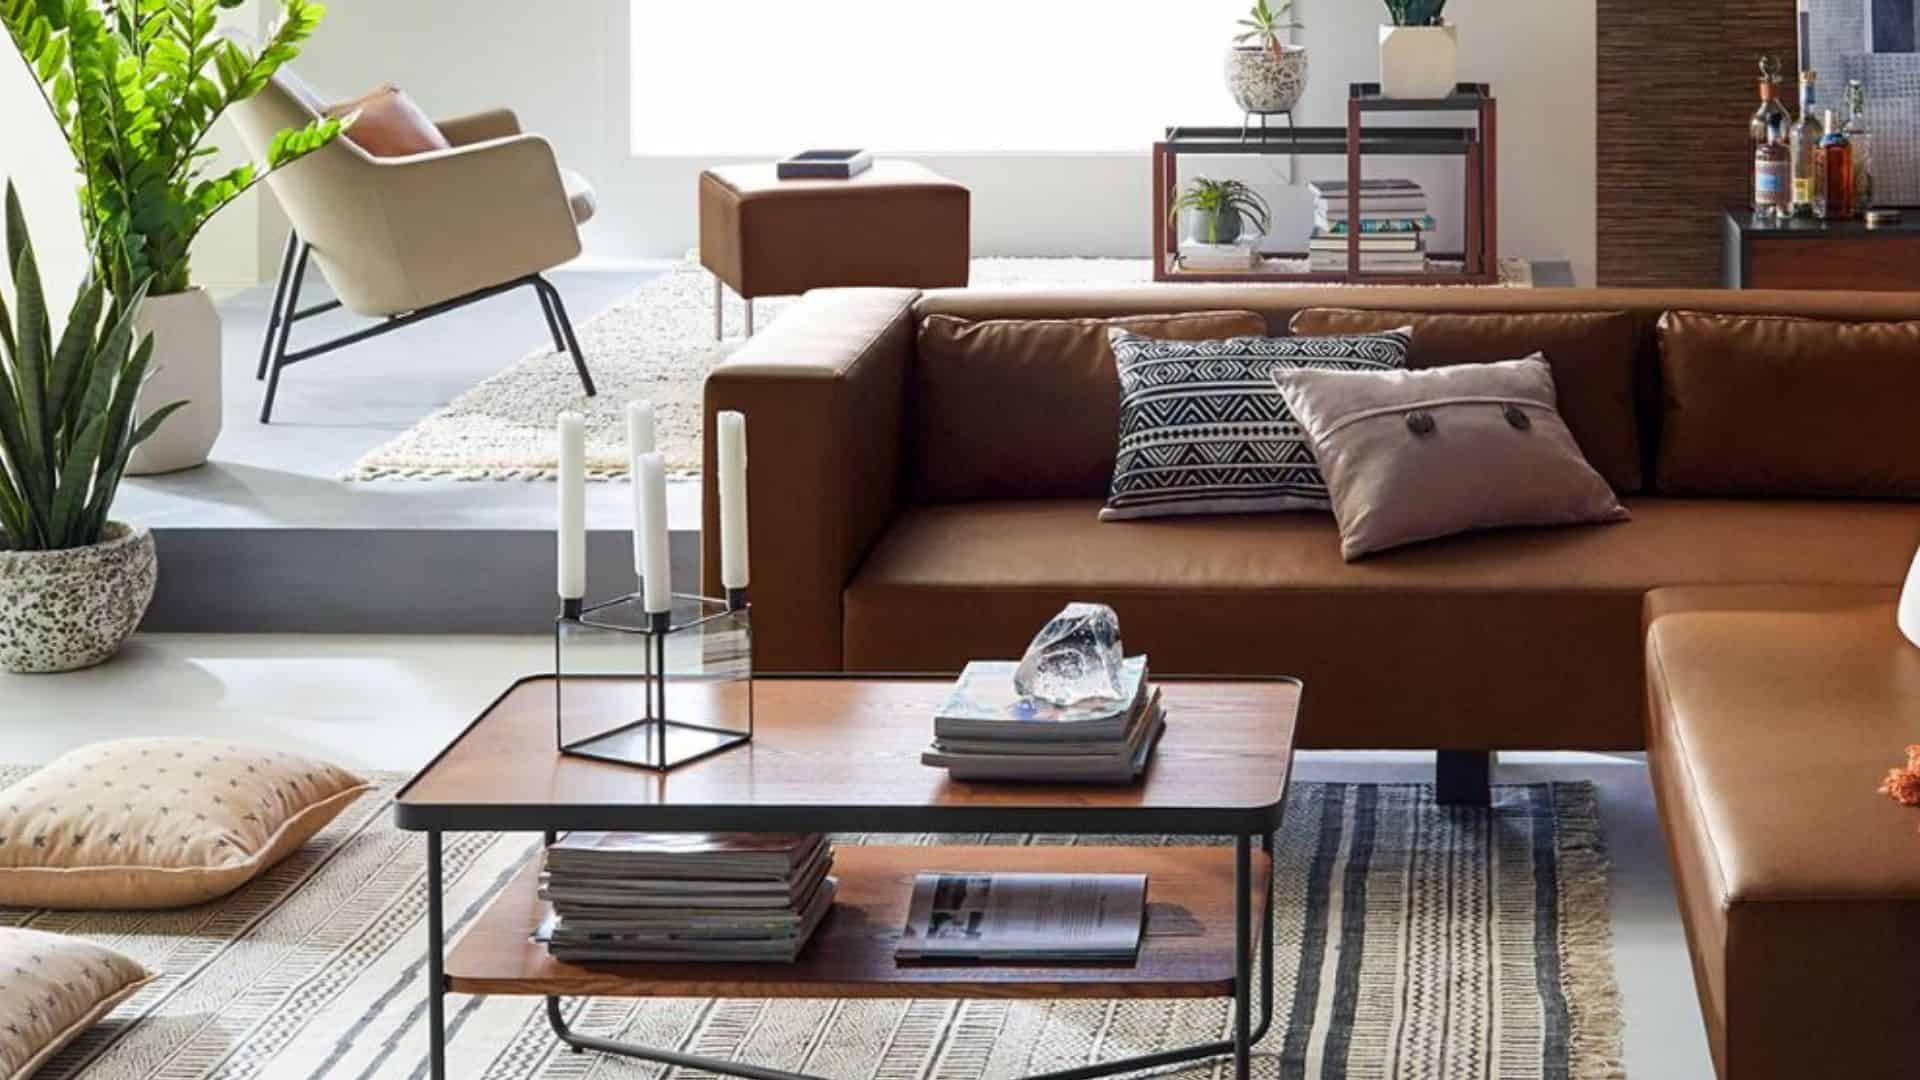 The A – Z Guide Of HOW TO FIND THE PERFECT RUG